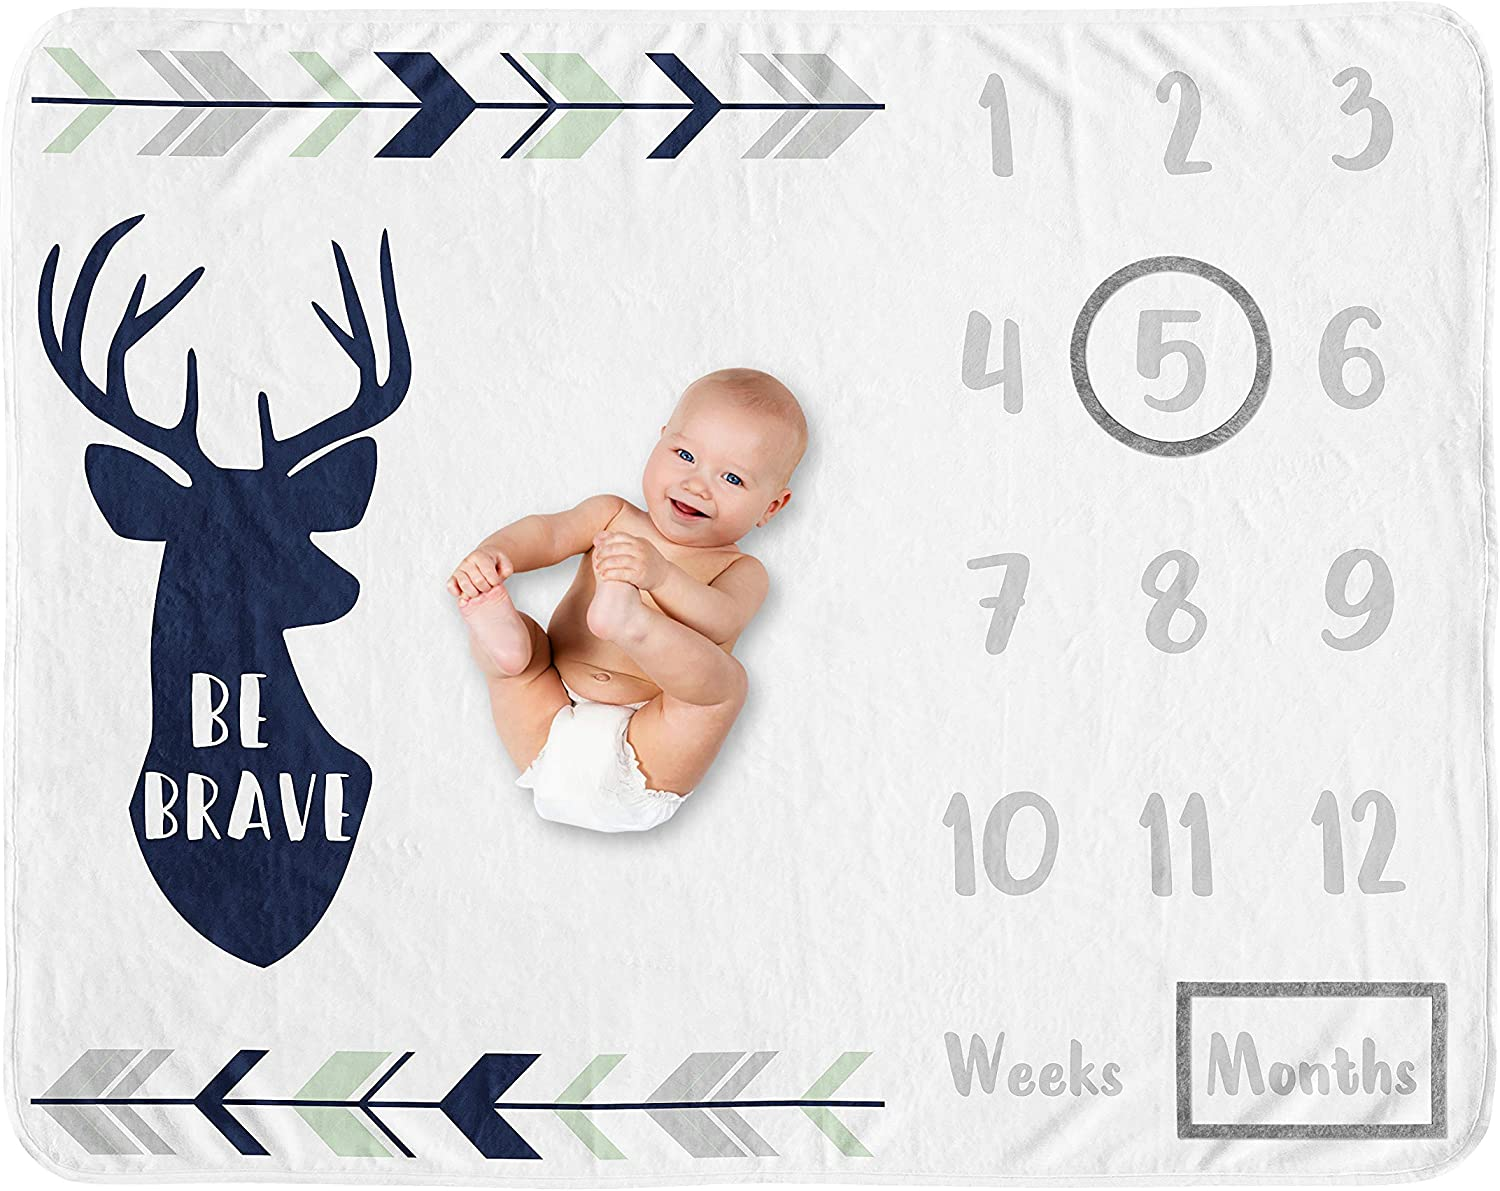 Sweet Jojo Designs Woodland Deer Boy Milestone Blanket Monthly Newborn First Year Growth Mat Baby Shower Memory Keepsake Gift Picture - Navy Blue, Mint and Grey Woodsy Forest Arrow Be Brave